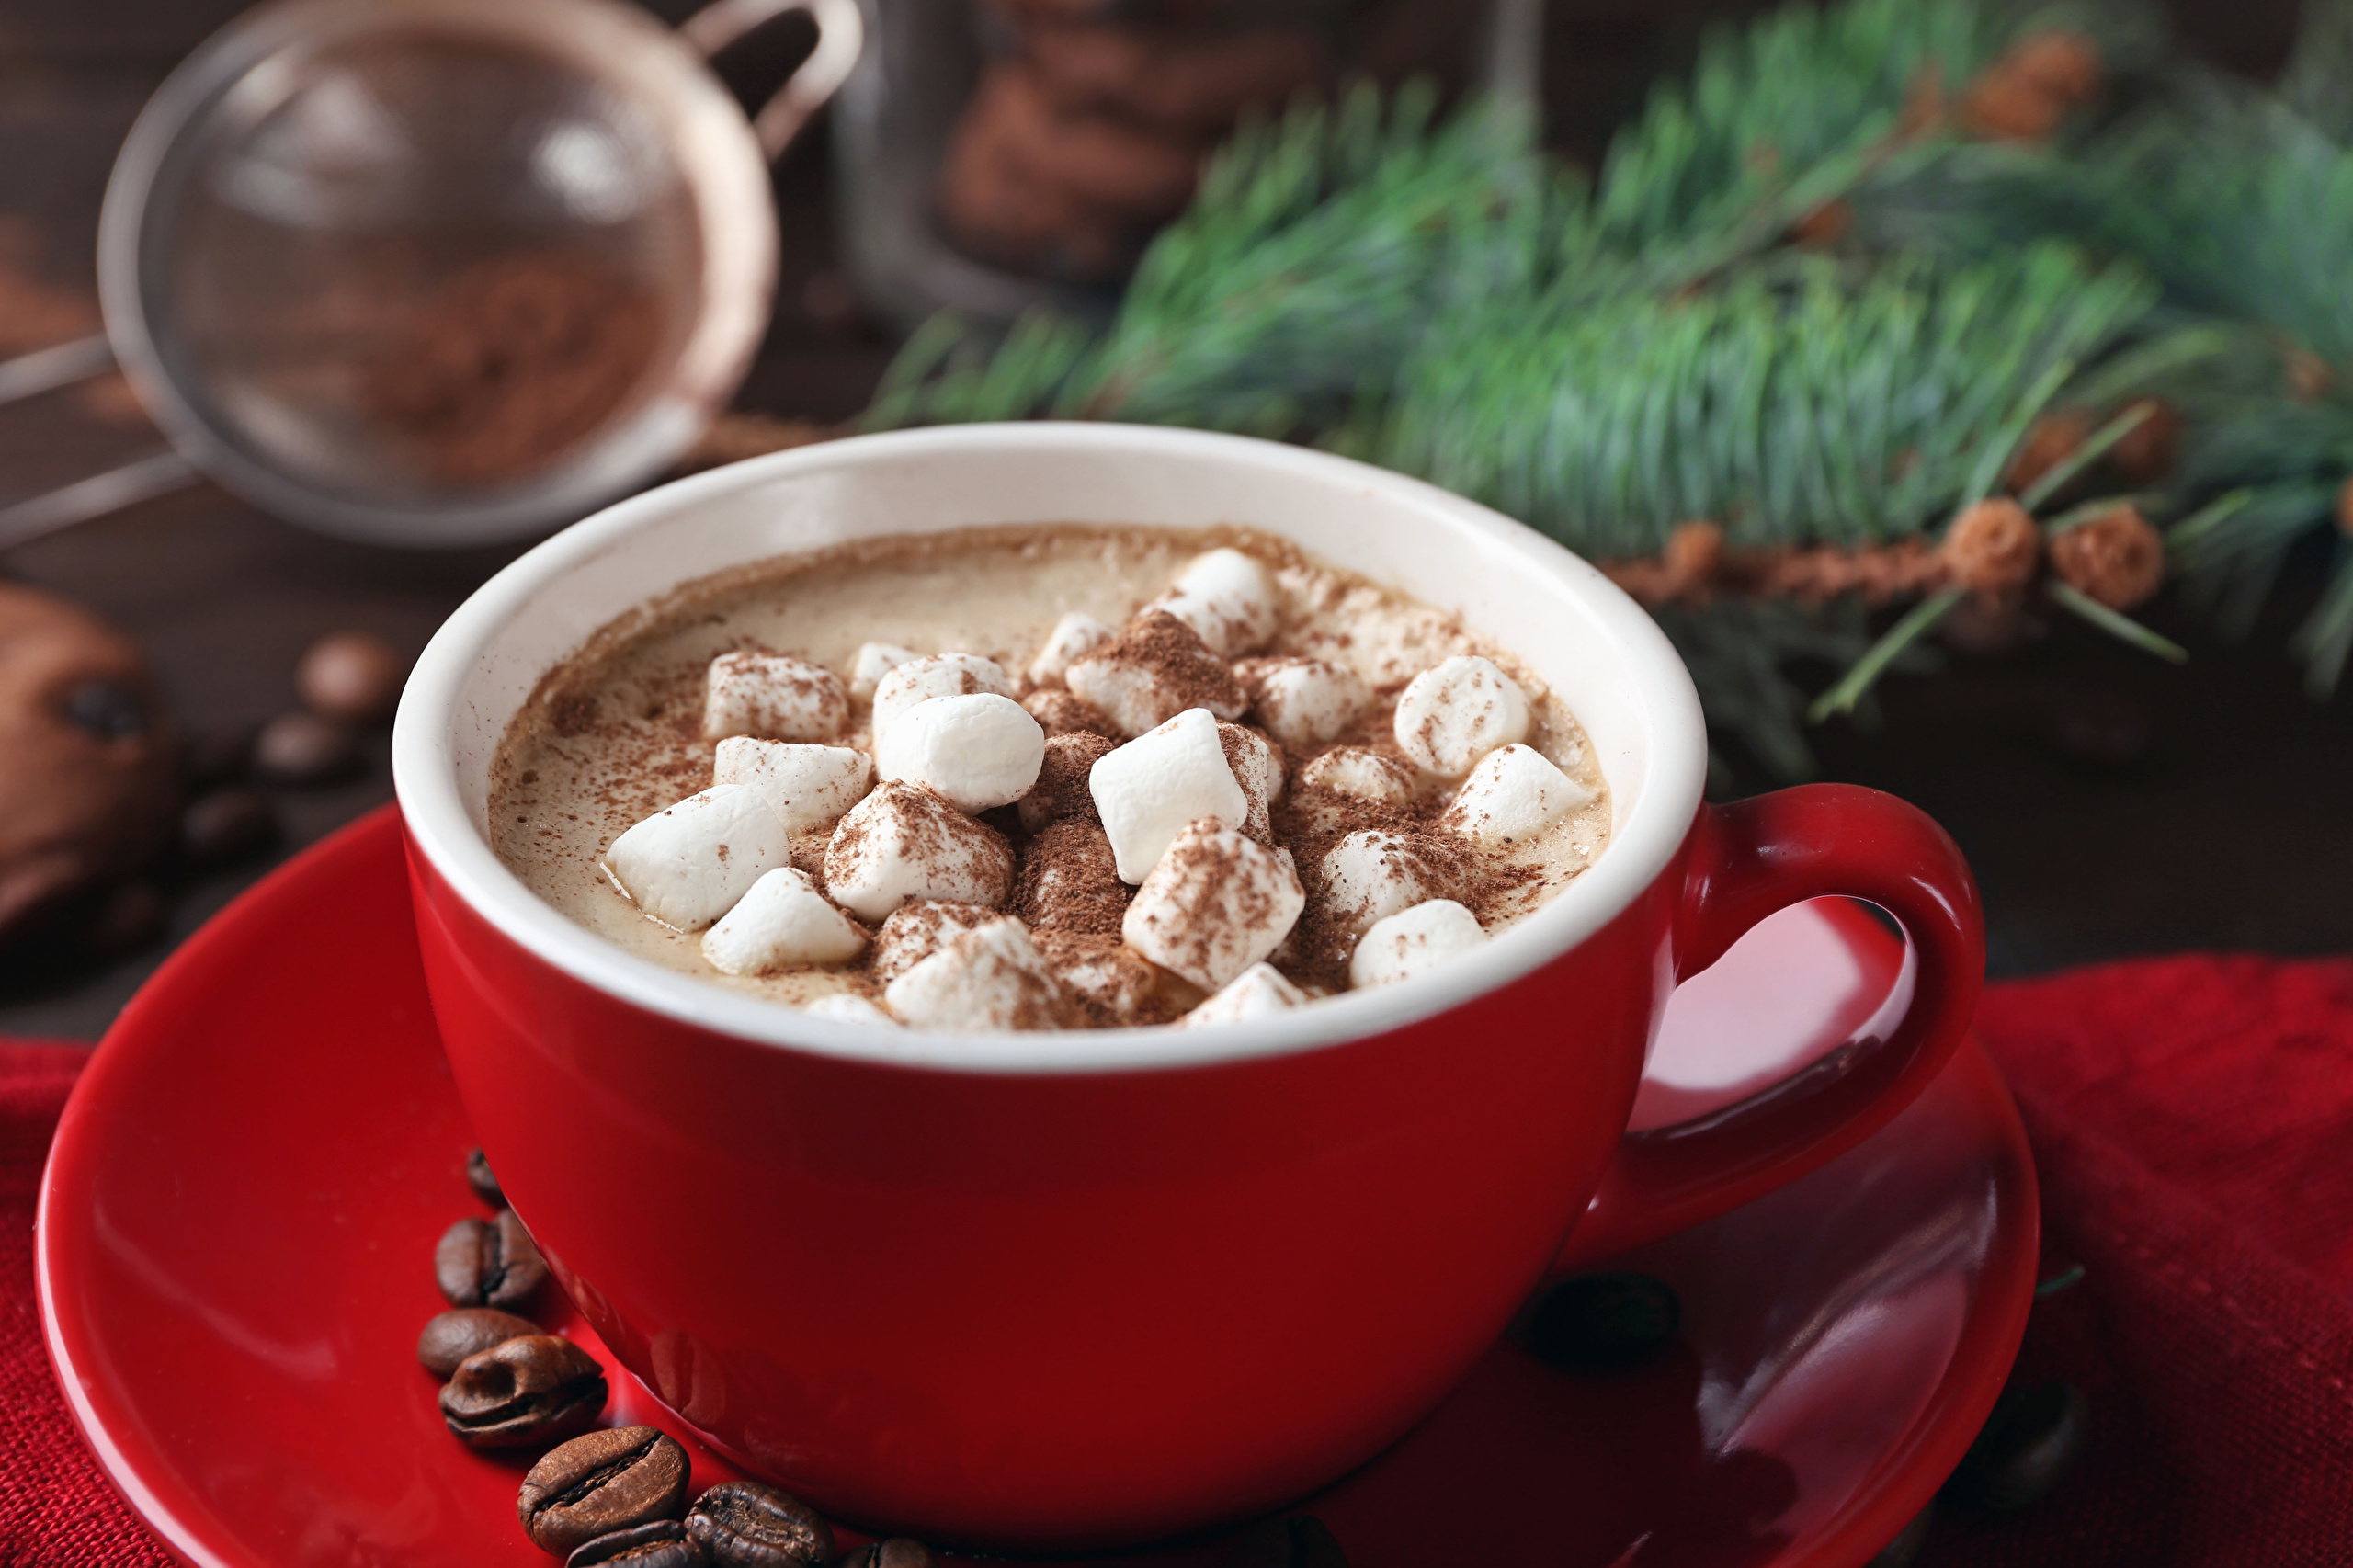 Photos Marshmallow Hot chocolate drink Cup Food Saucer drink 1920x1280 cocoa Drinks